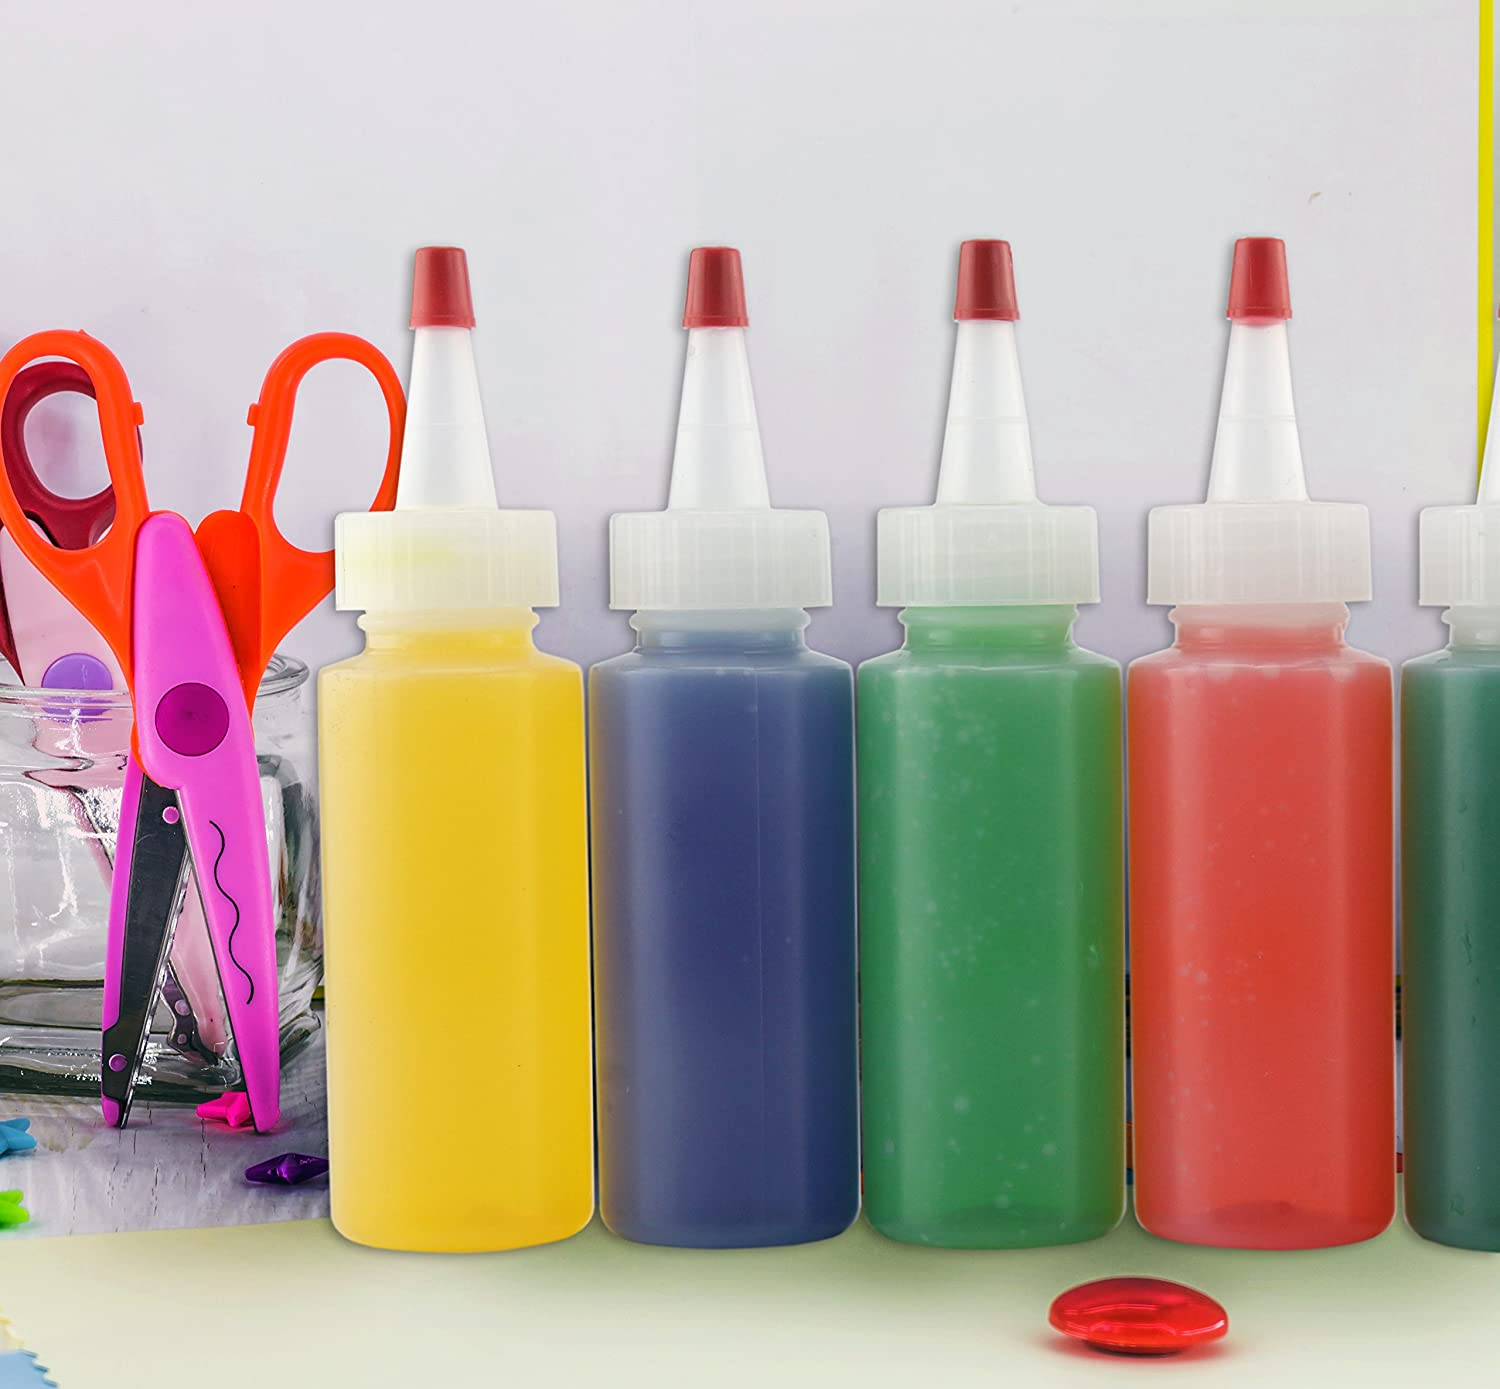 Amazon 2 Oz HDPE Plastic Squeeze Bottles for Crafts Food Art